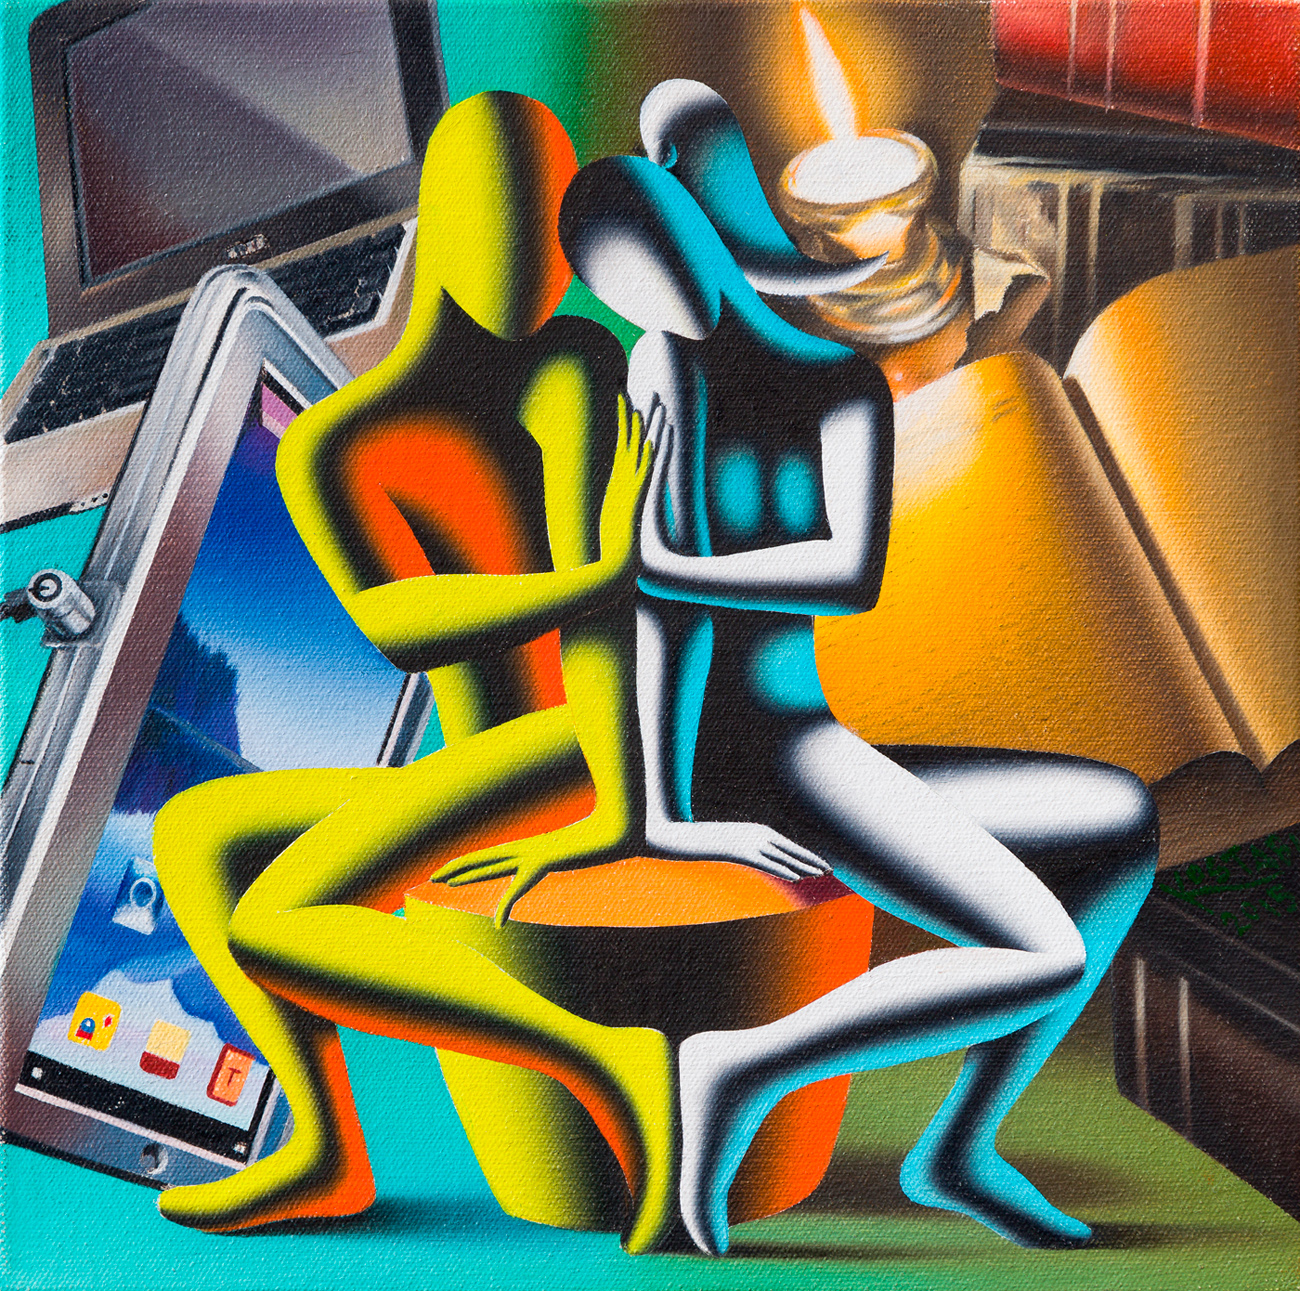 MARK KOSTABI (1960) - The end justifies the means, 2015